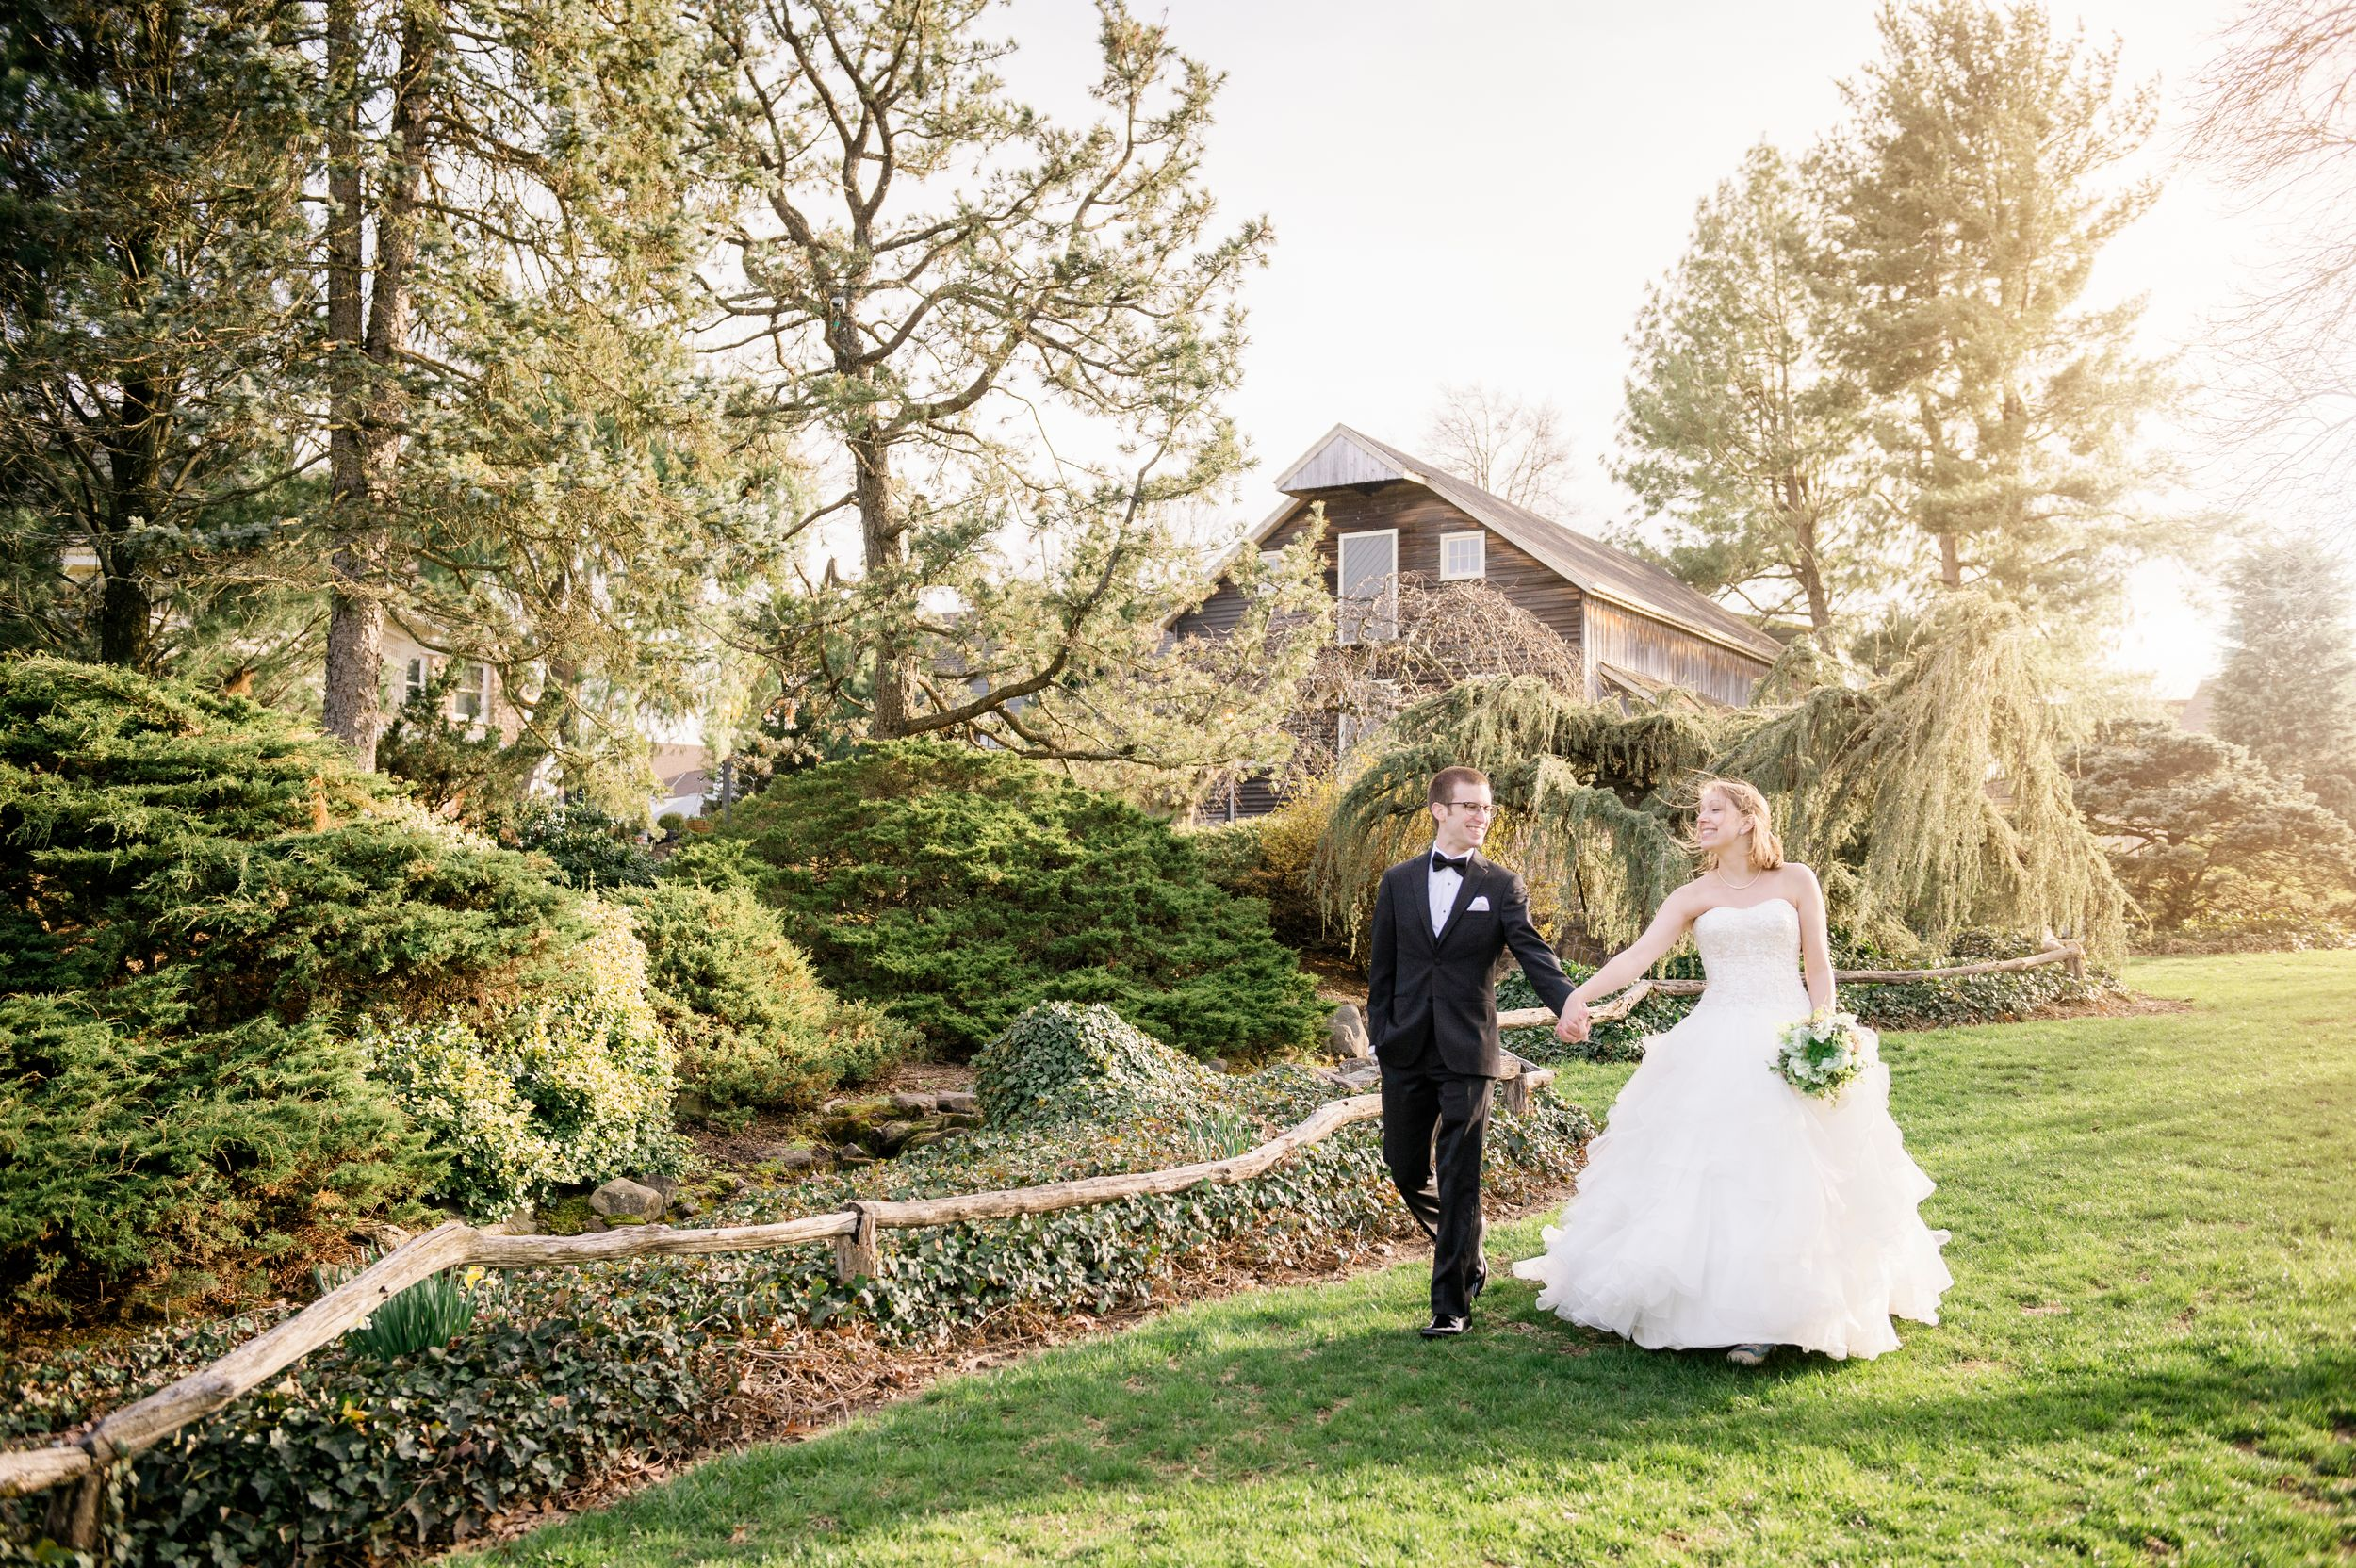 sunset wedding photo of bride and groom walking at peddlers village wedding venue